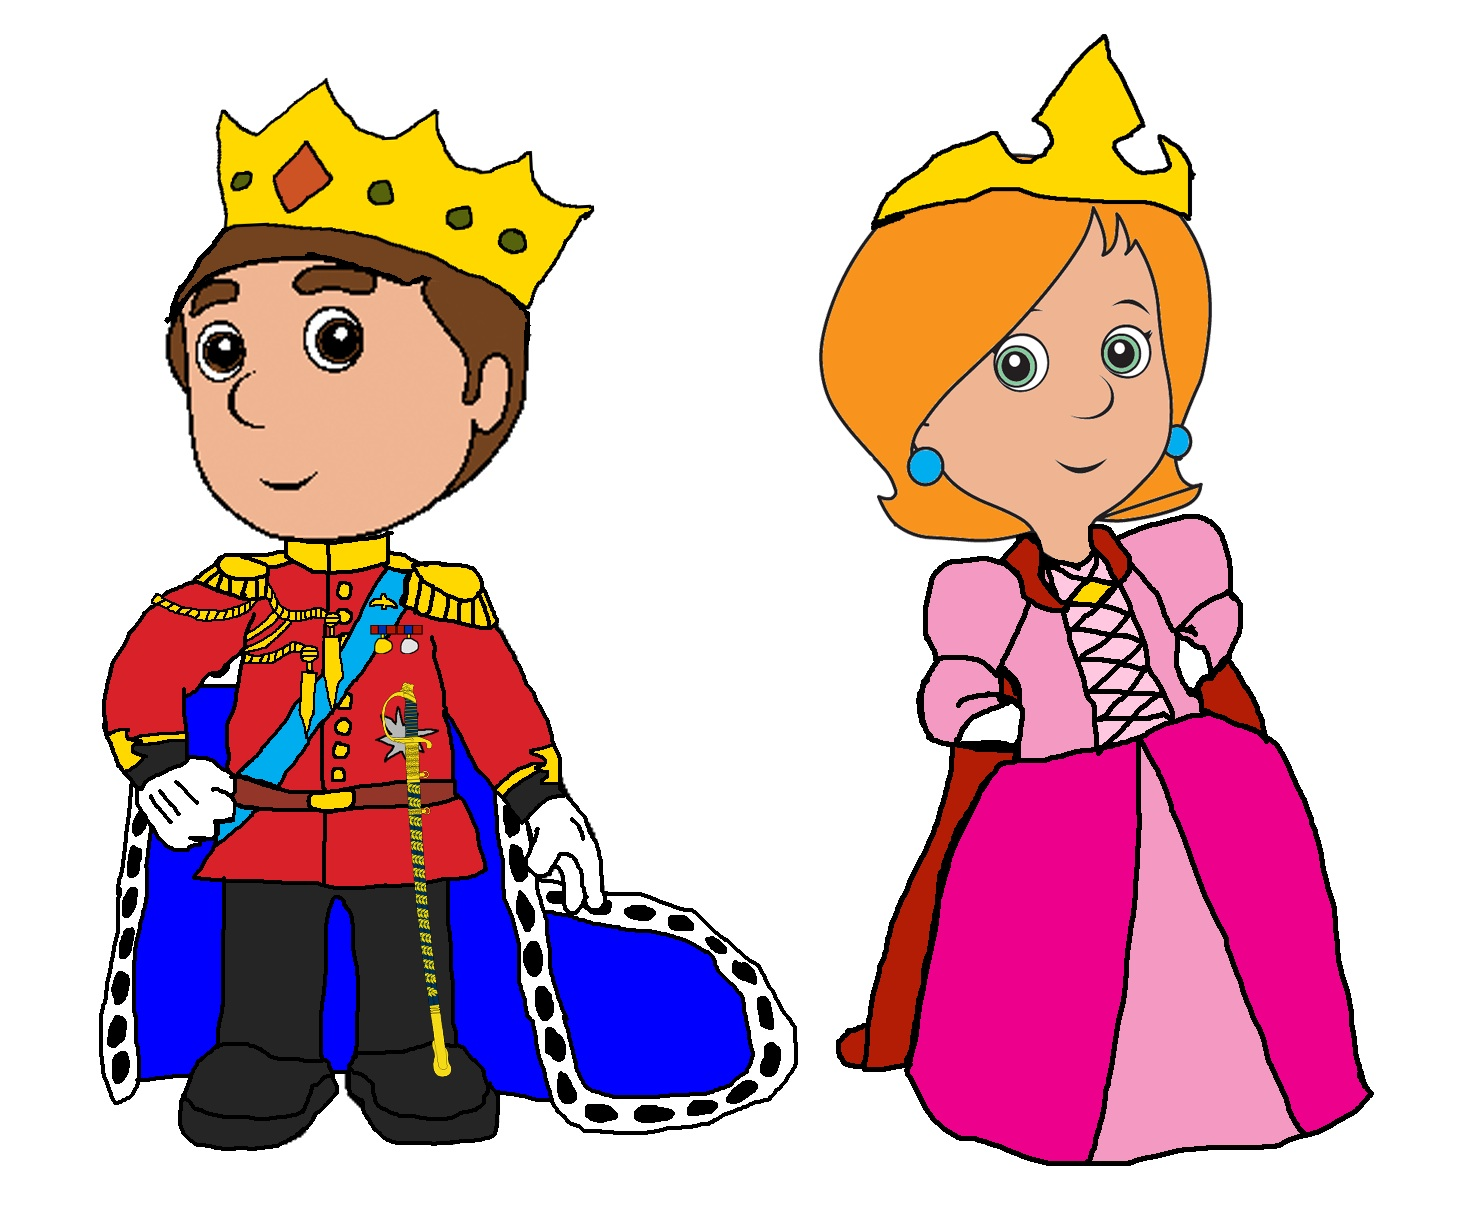 Prince and princess clipart 9 » Clipart Station.